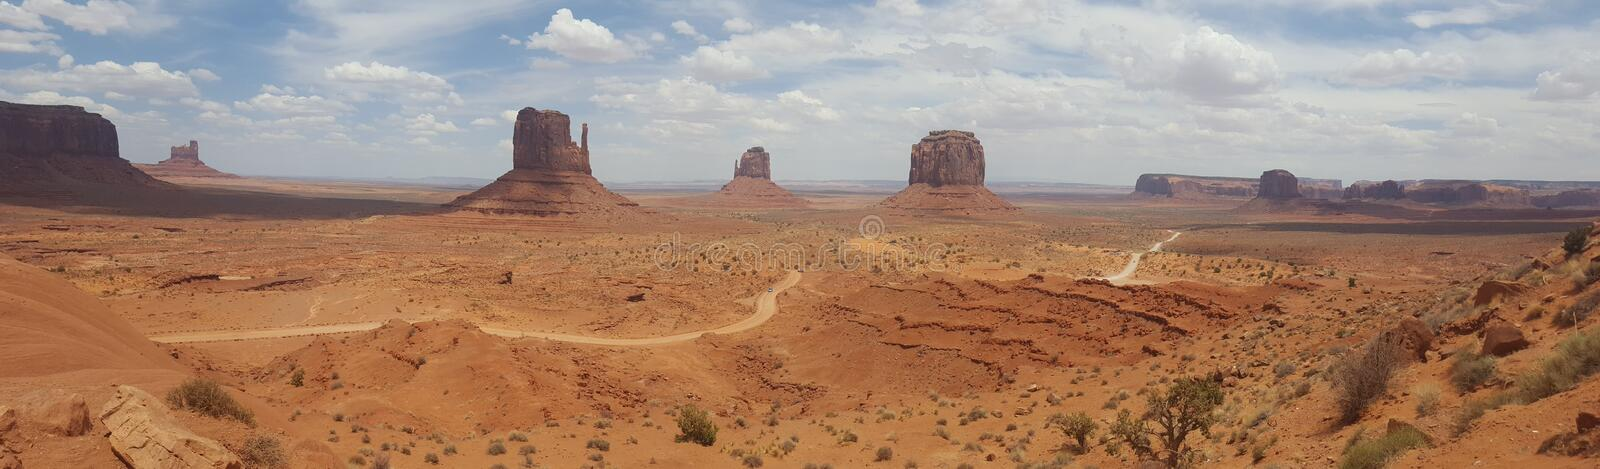 Monument Valley Arizona fotografia stock